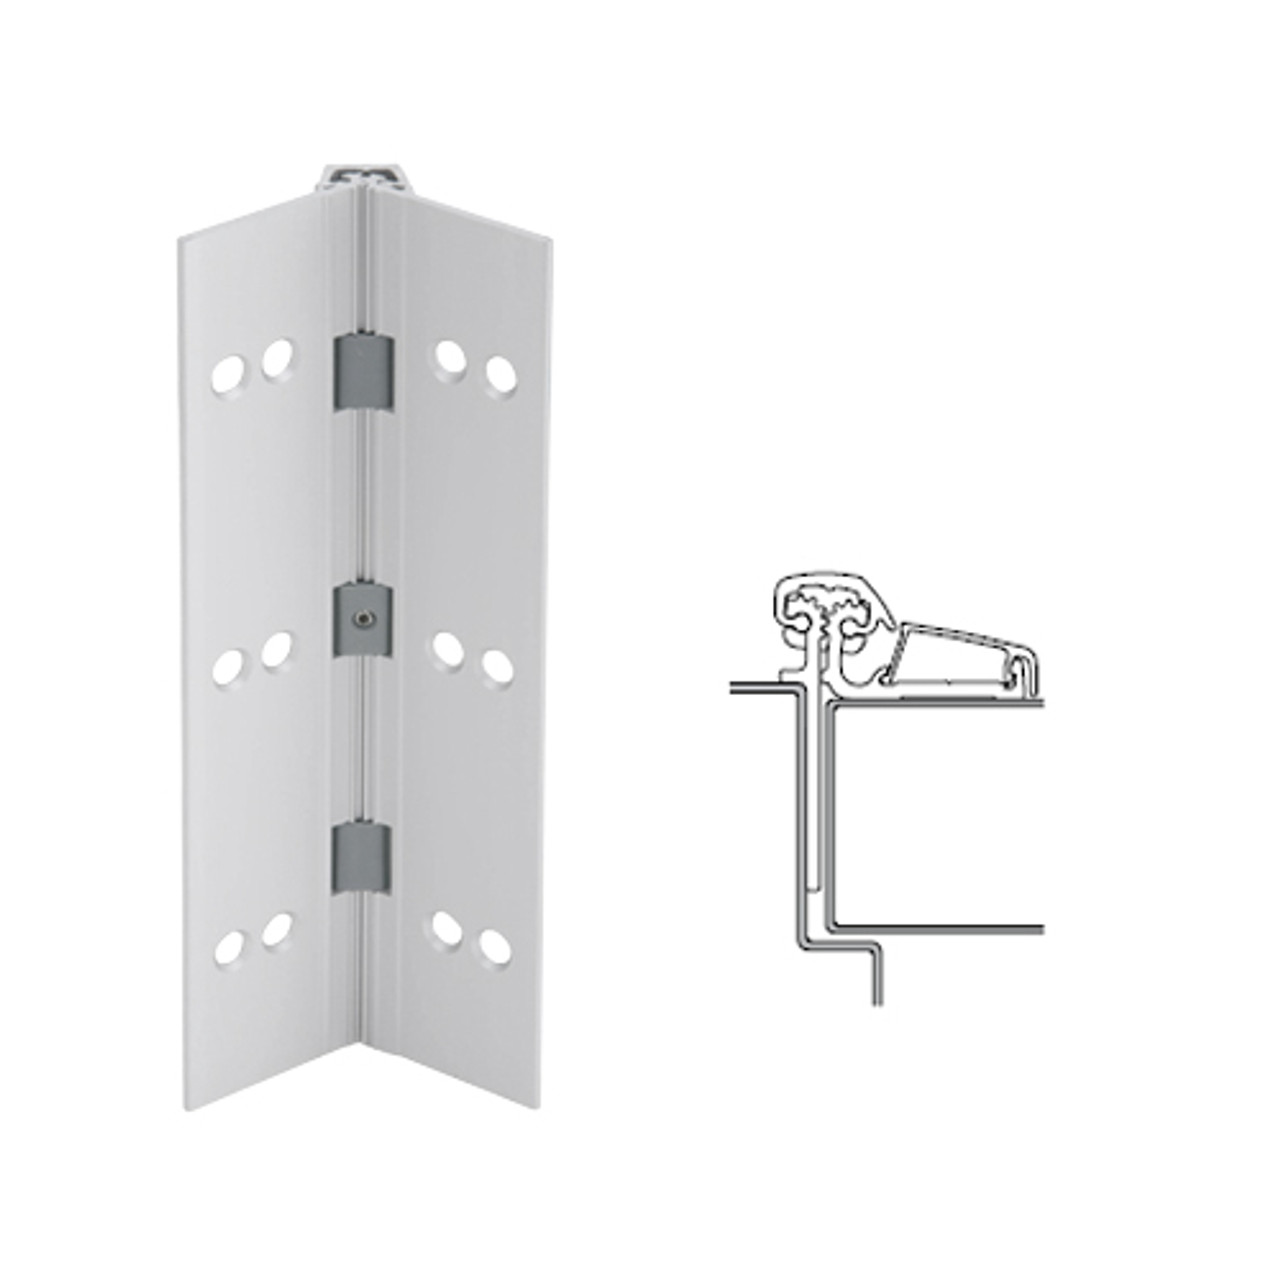 053XY-US28-120-SECHM IVES Adjustable Half Surface Continuous Geared Hinges with Security Screws - Hex Pin Drive in Satin Aluminum